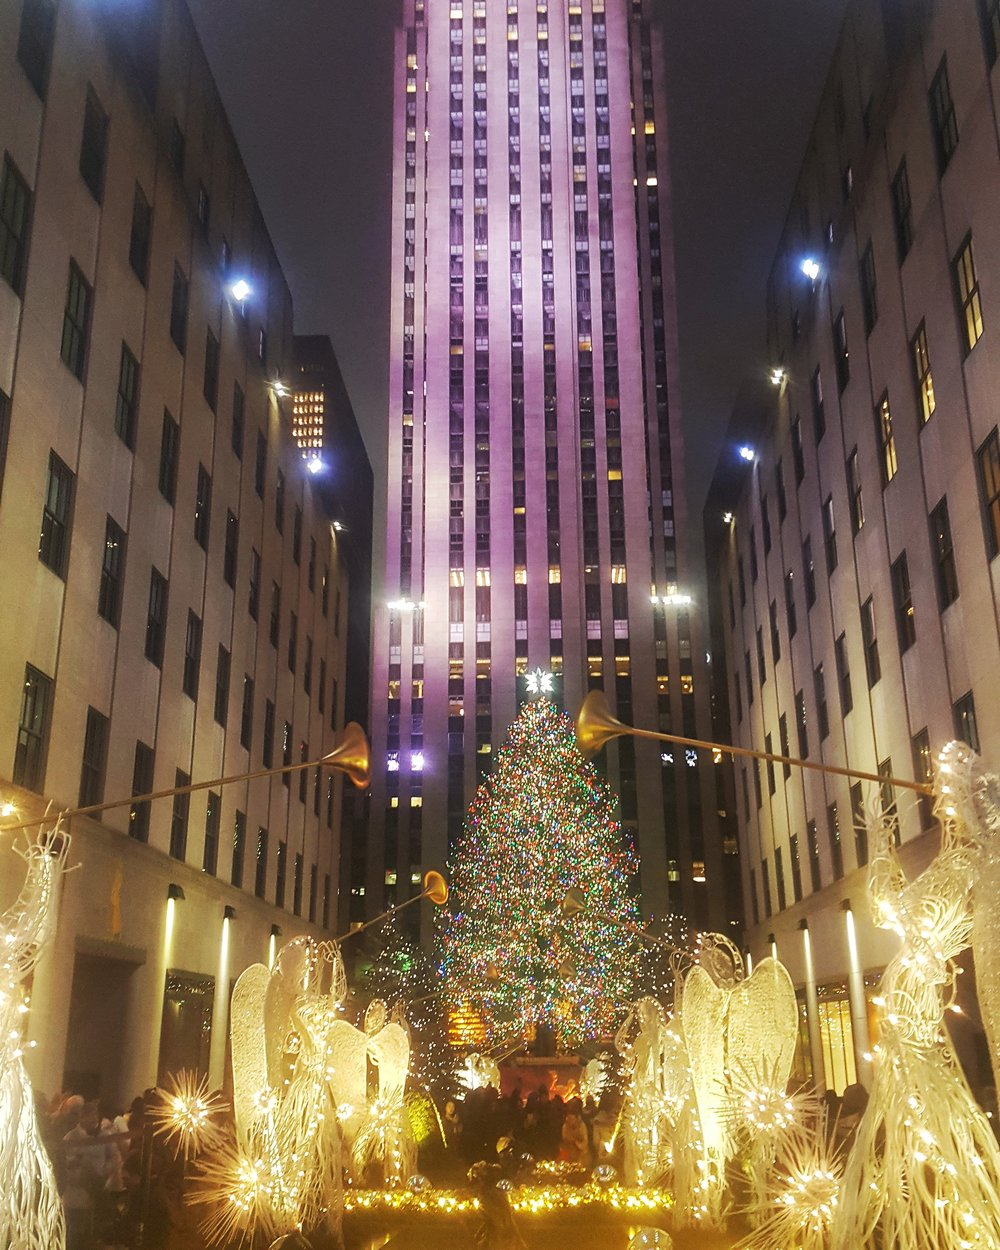 Rockefeller Center - the first lighting of the tree in November announces the official beginning of the holiday season in NYC. It was lit last night for the 2017 season!